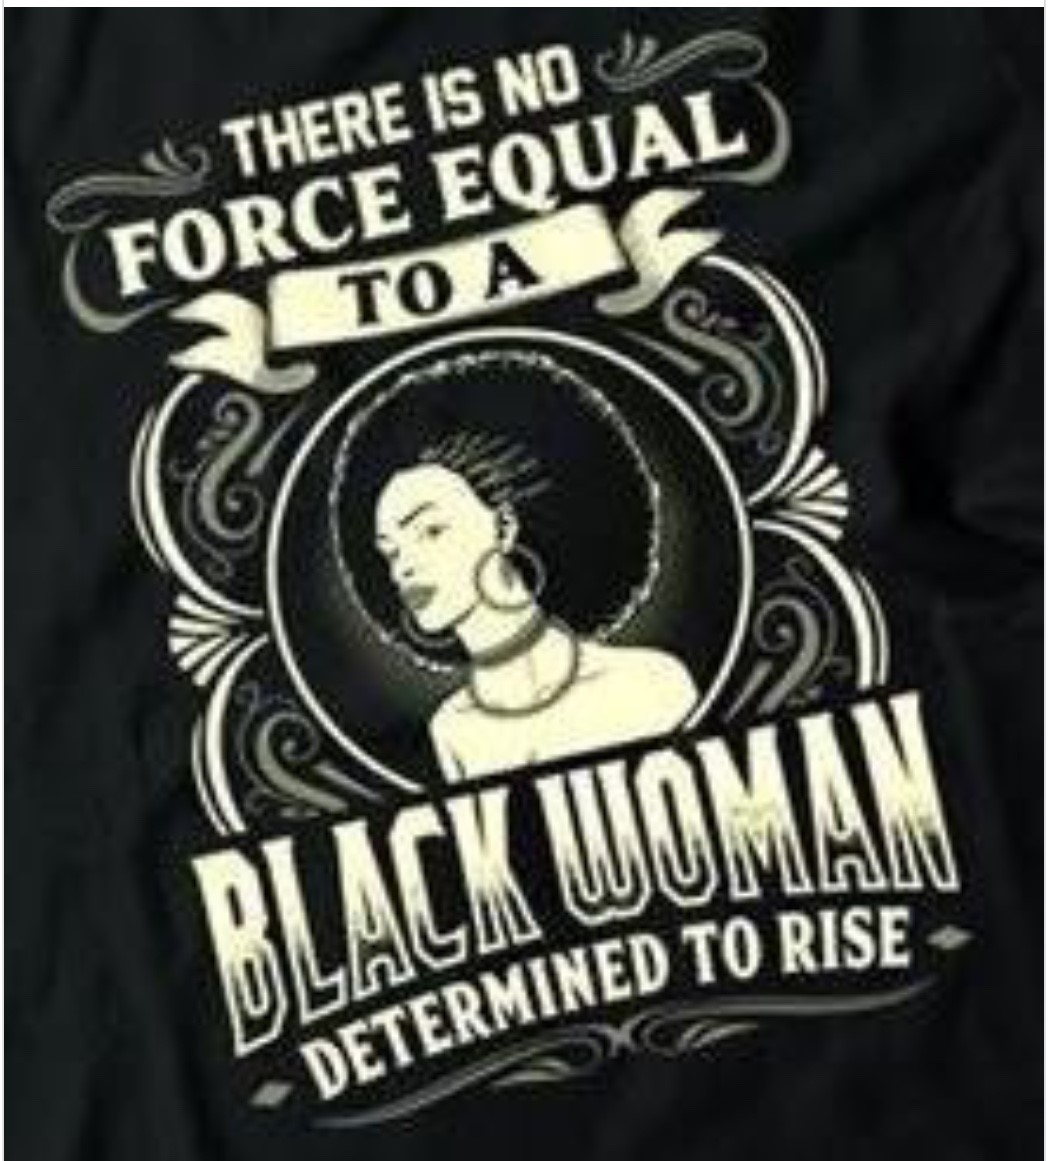 There is no force more powerful than the Black women determined to rise